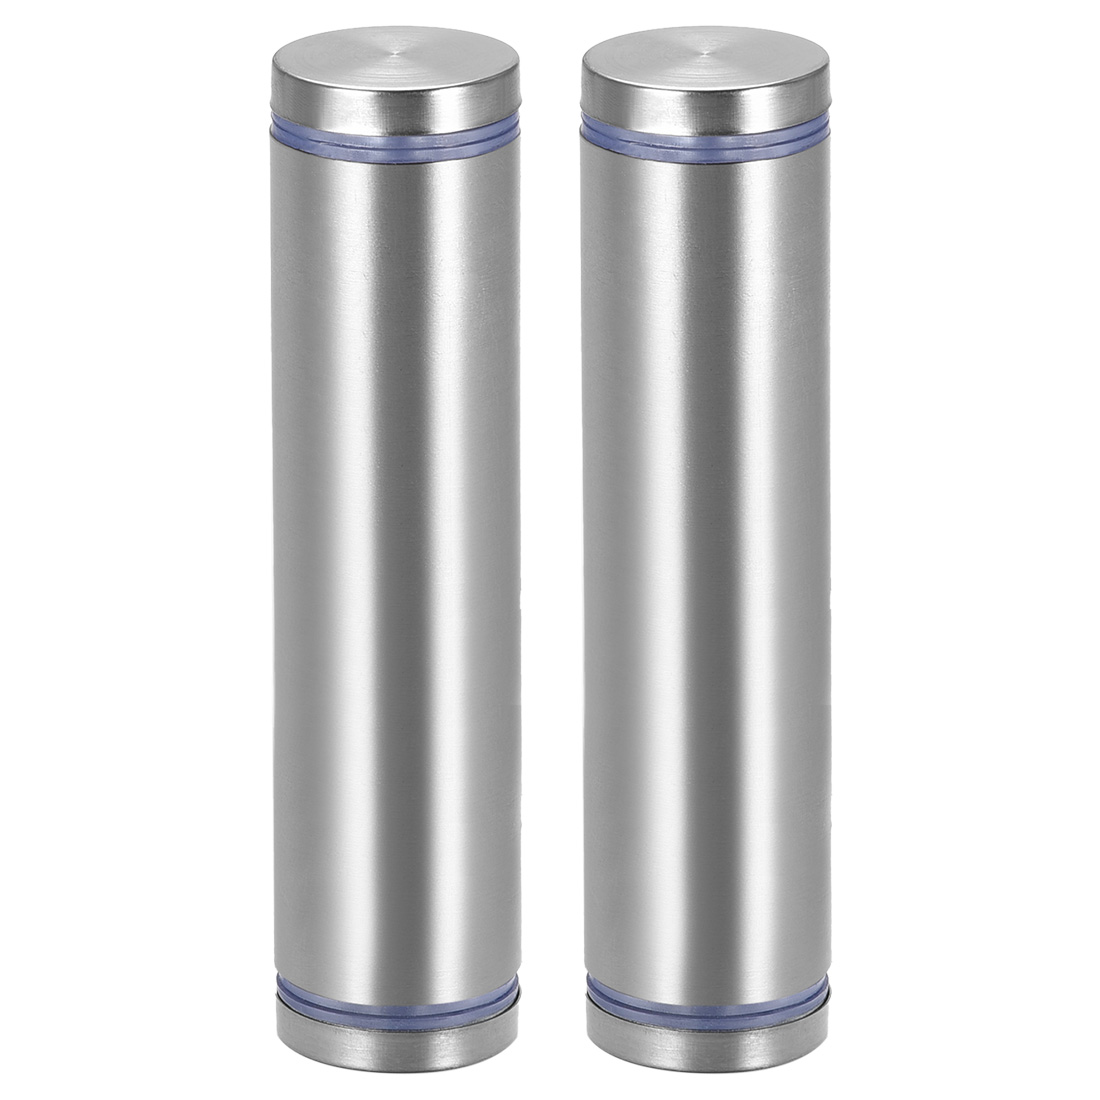 Glass Standoff Double Head Stainless Steel Standoff Holder 25mm x 105mm 2 Pcs